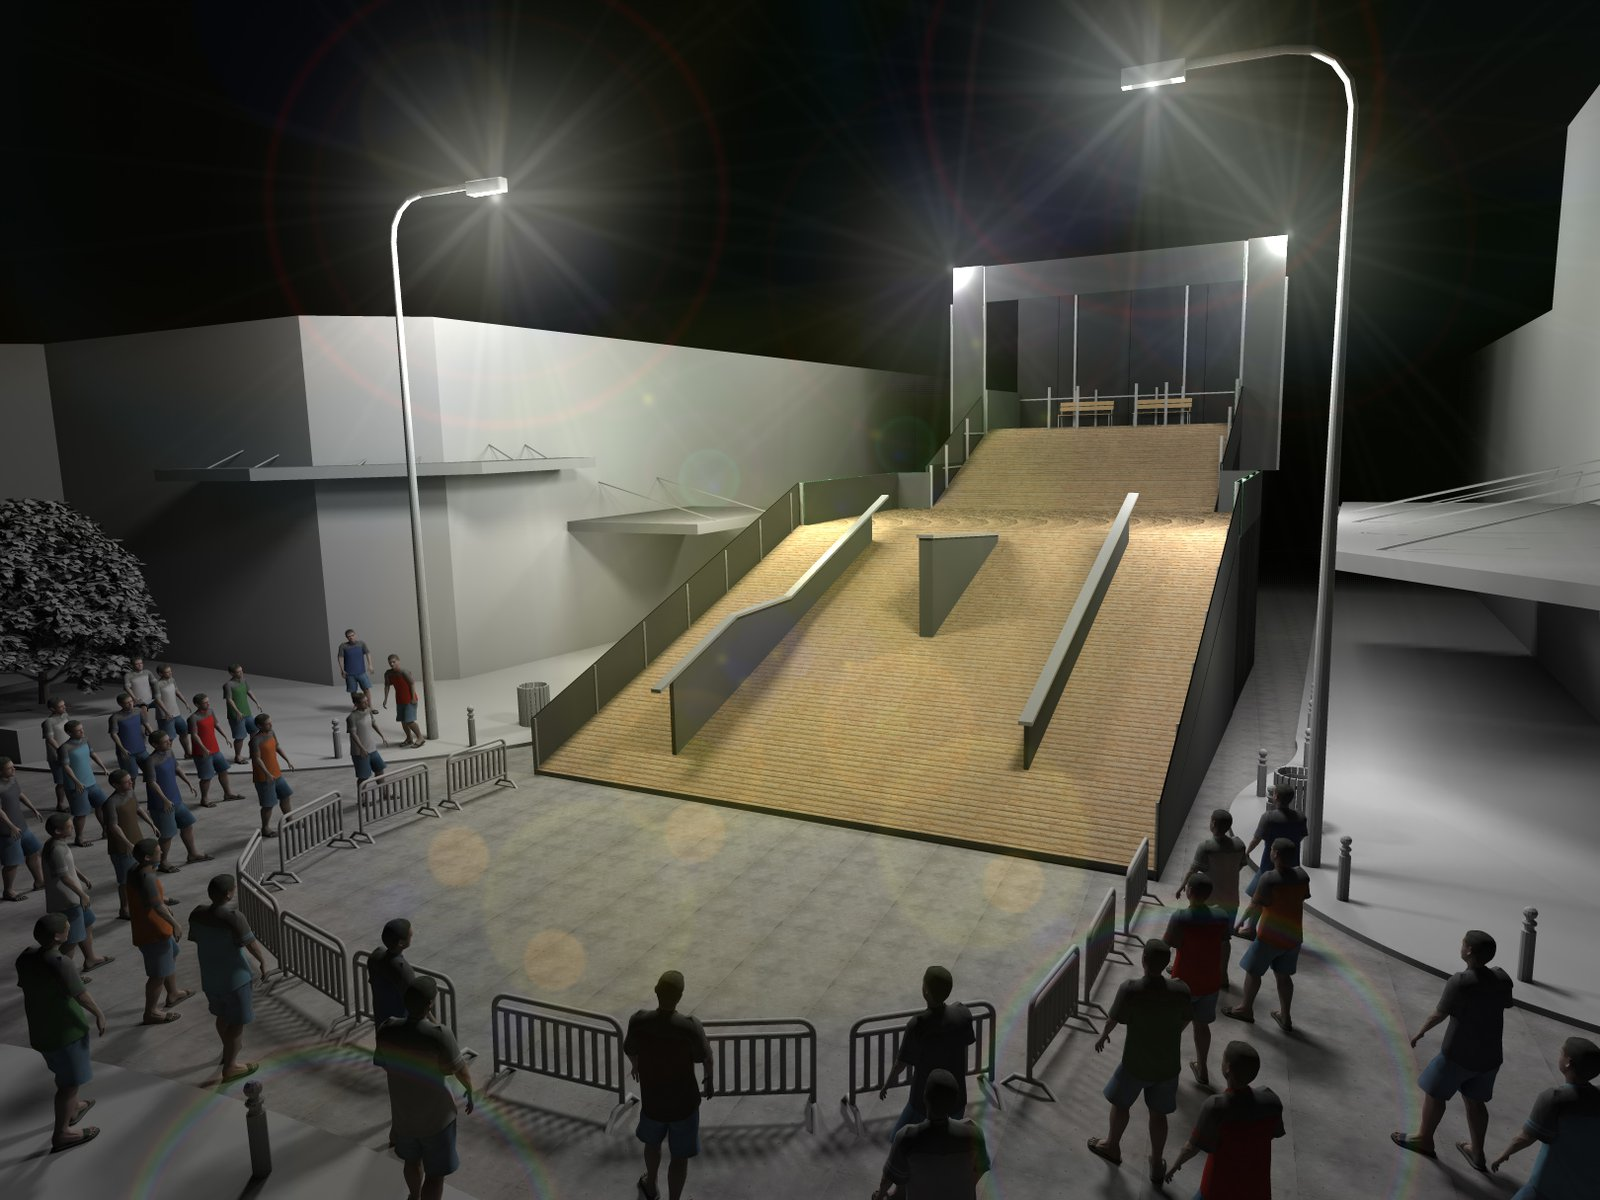 Octagon Rail Jam set-up